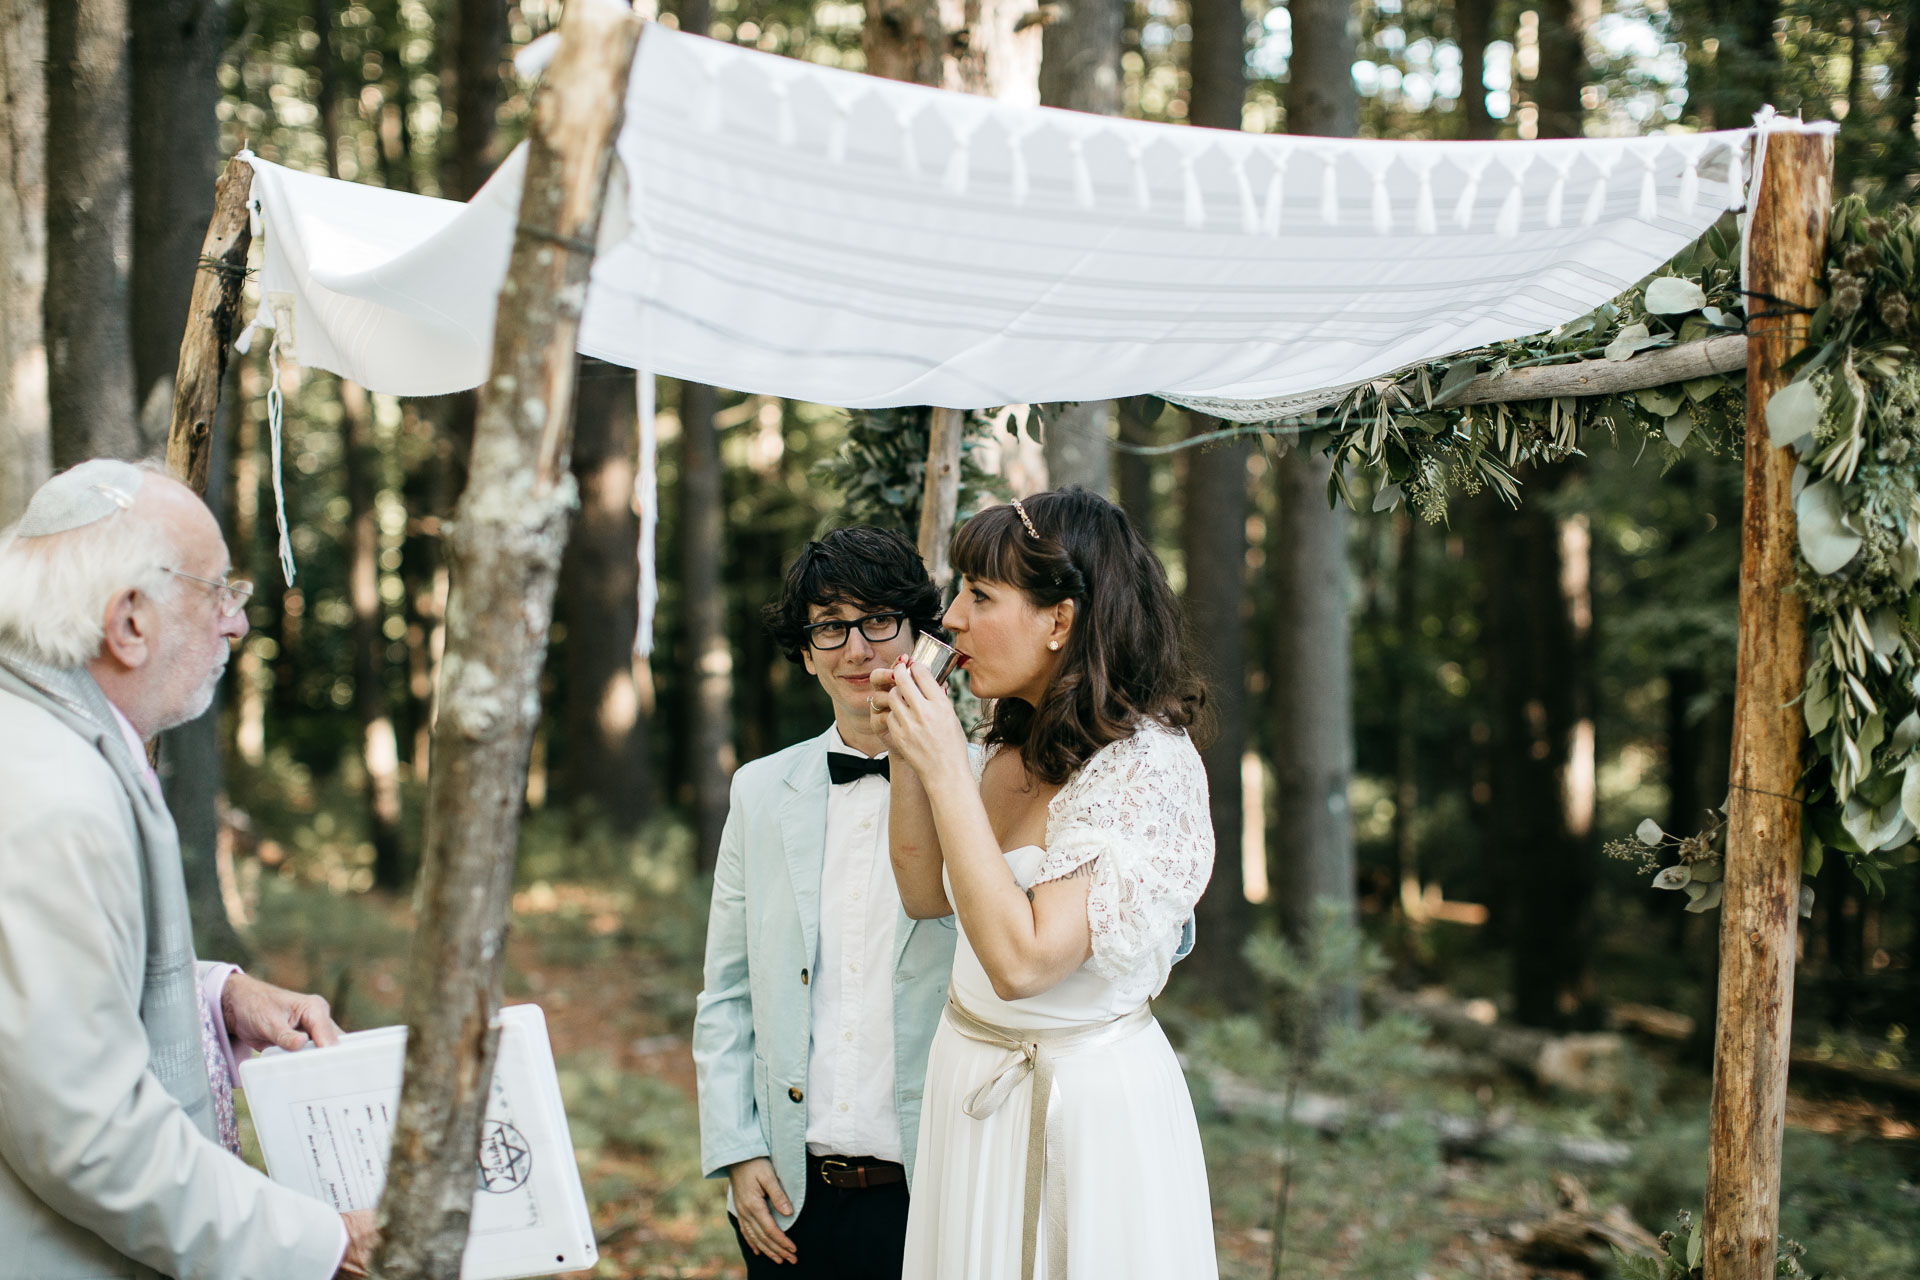 Same Sex Intimate Elopement In the Catskills Mountains by Jean-Laurent Gaudy Photography